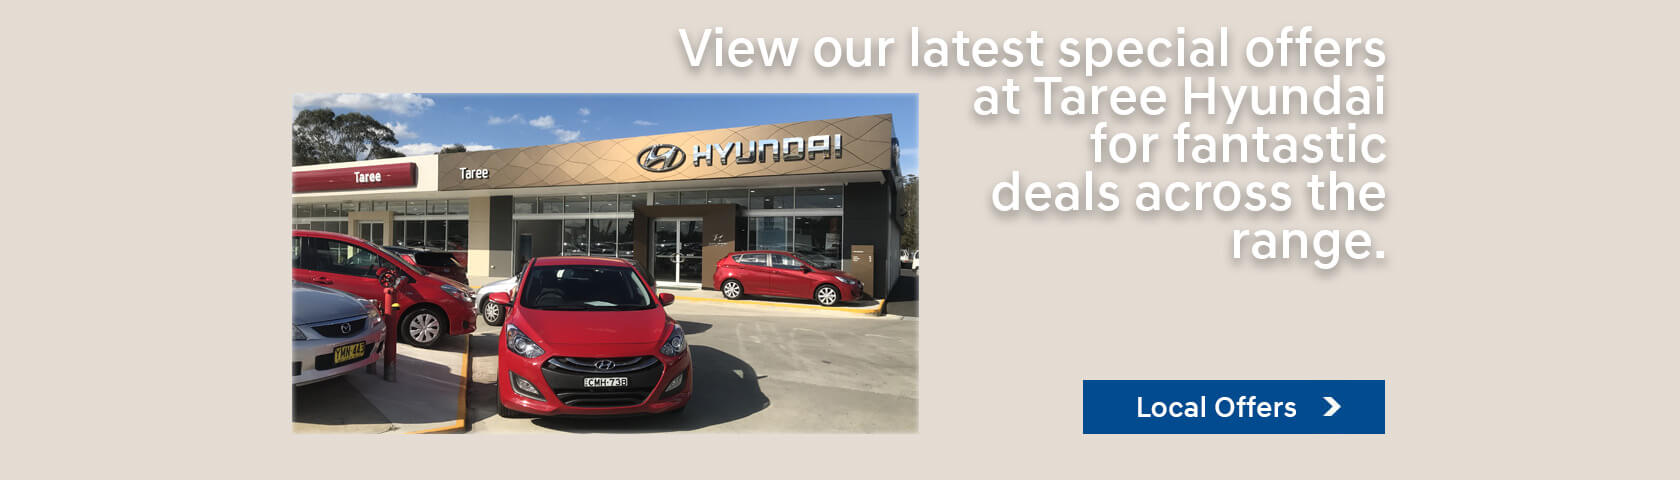 Taree Hyundai Local Offers